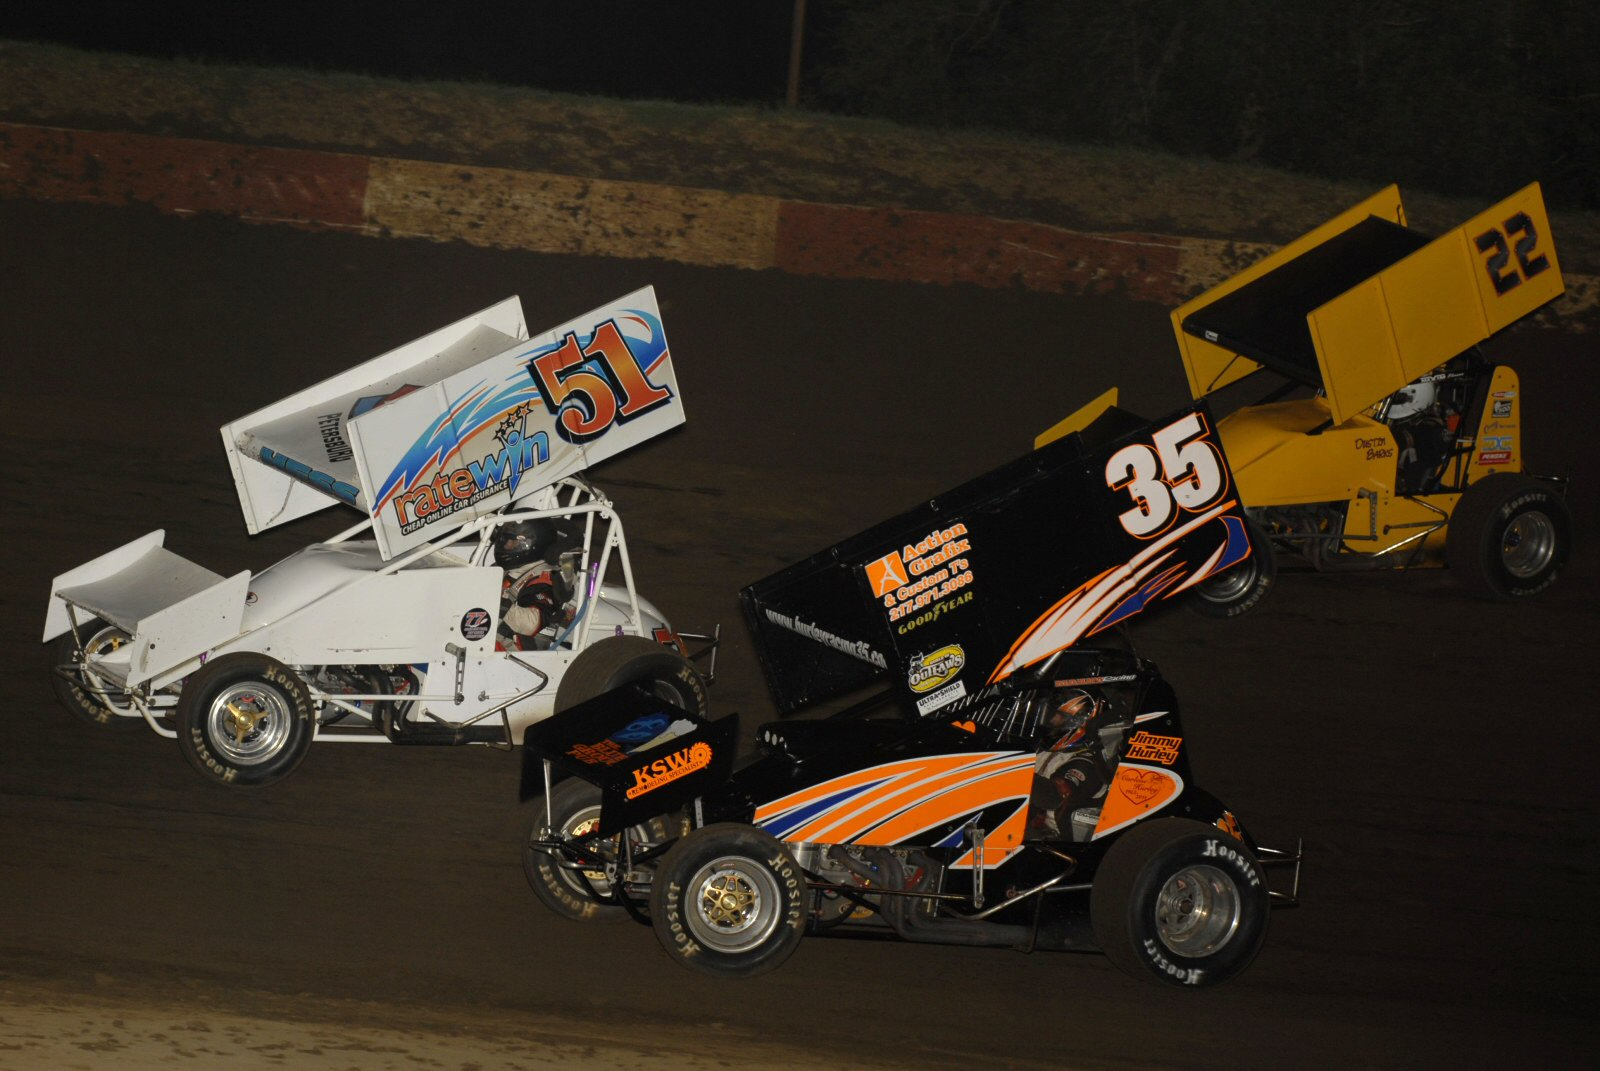 Mike Hess, Jimmy Hurley, and Dustin Barks at Peoria. - Mark Funderburk photos